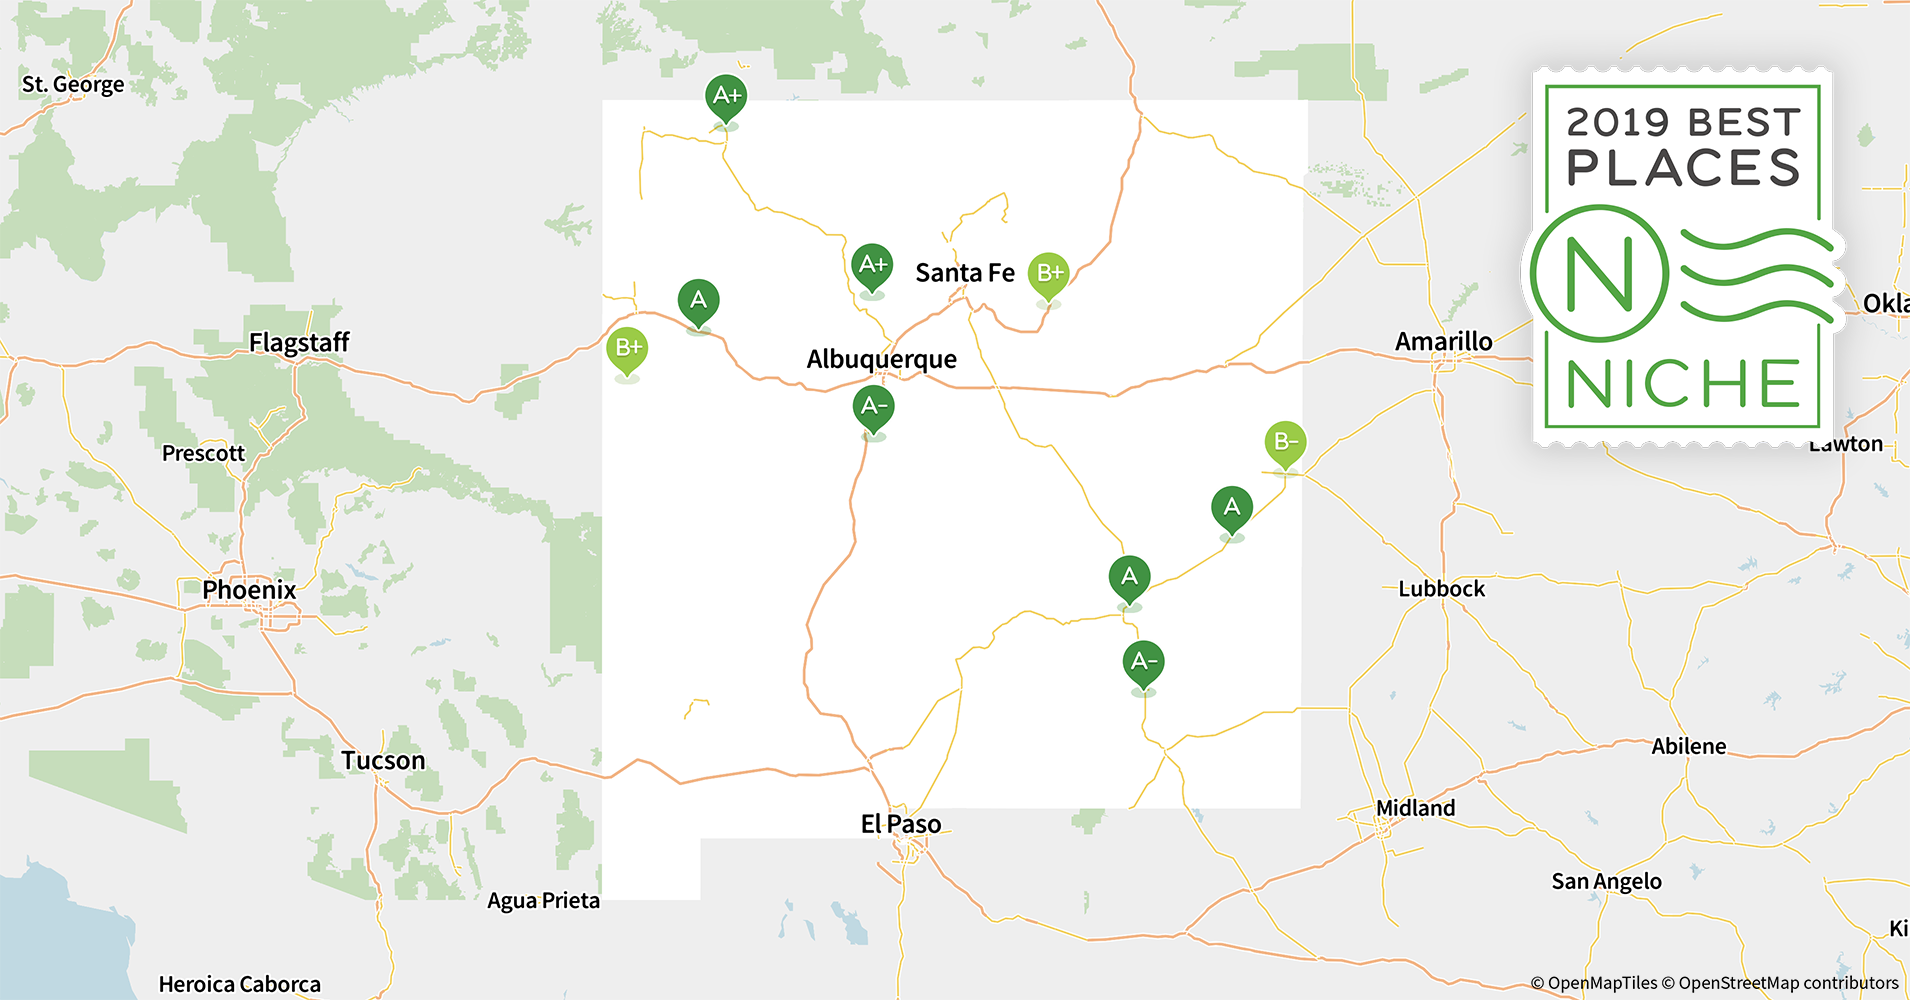 2019 Best Places to Live in New Mexico - Niche